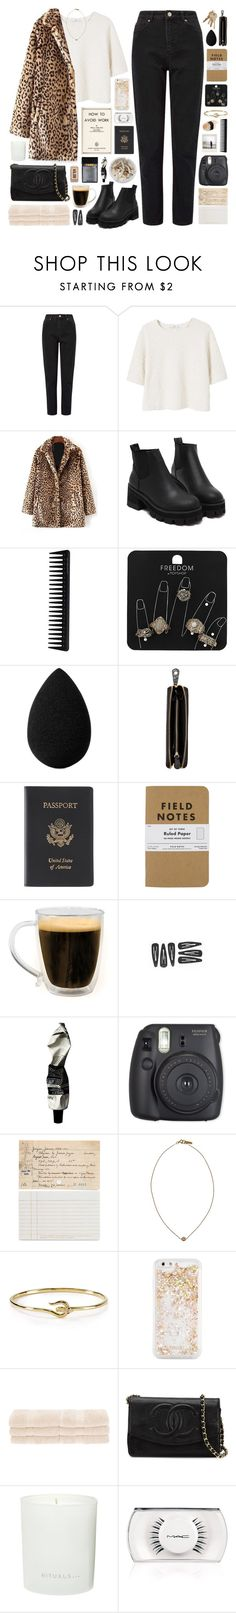 """""""060117"""" by rosemarykate ❤ liked on Polyvore featuring Ash, Miss Selfridge, MANGO, GHD, Topshop, beautyblender, Nomadic, Royce Leather, Polaroid and Primula"""